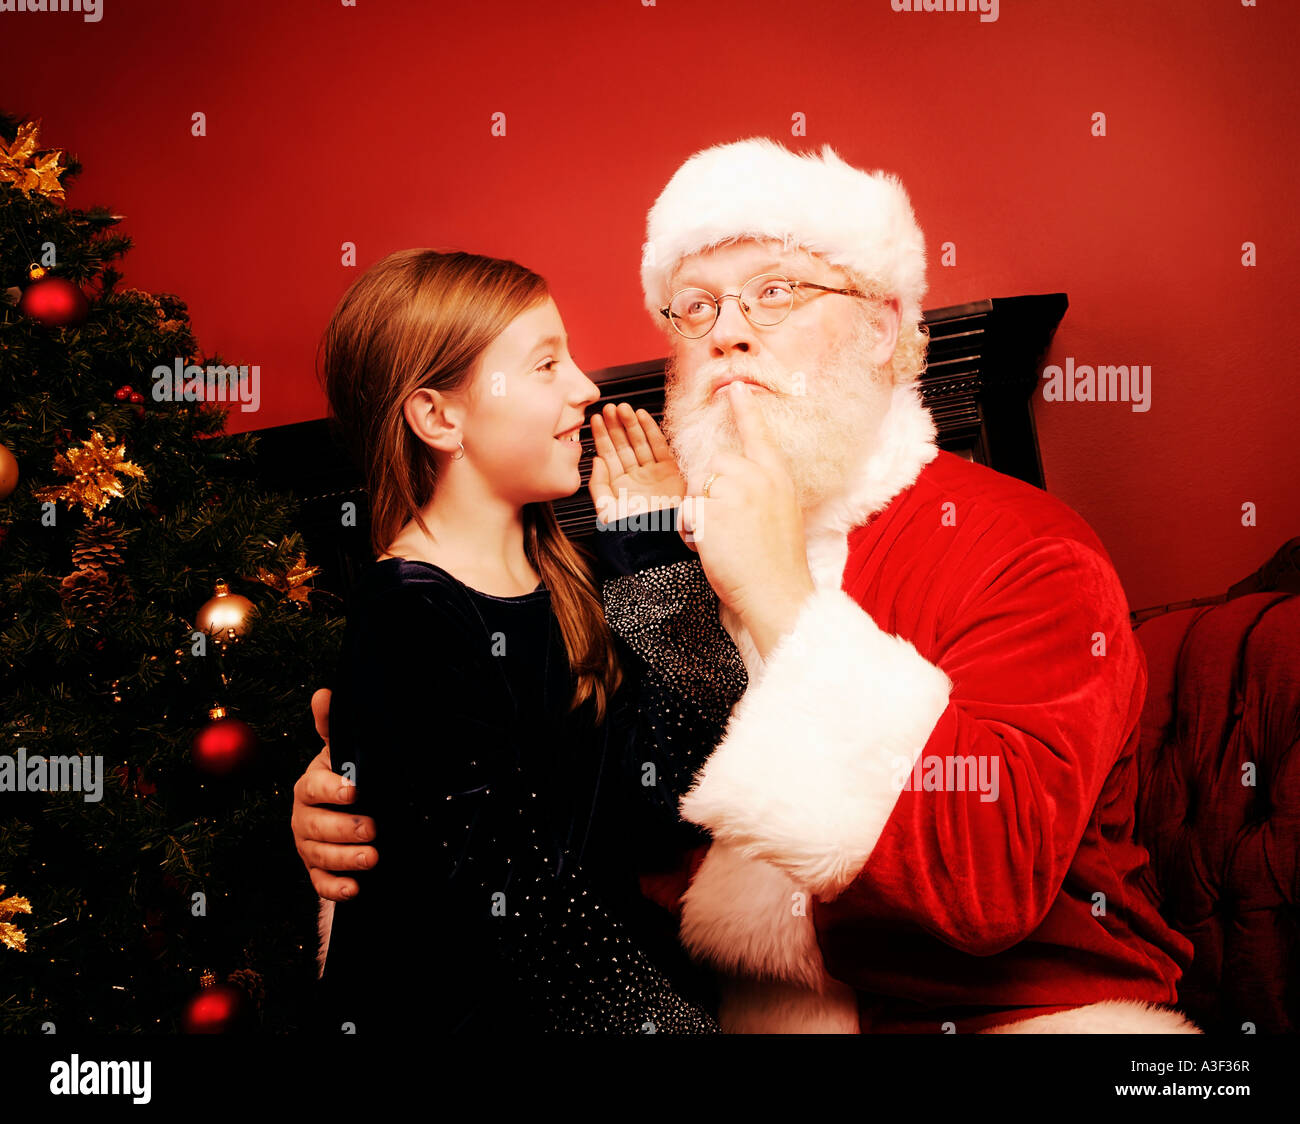 Young girl talking to Santa Claus - Stock Image